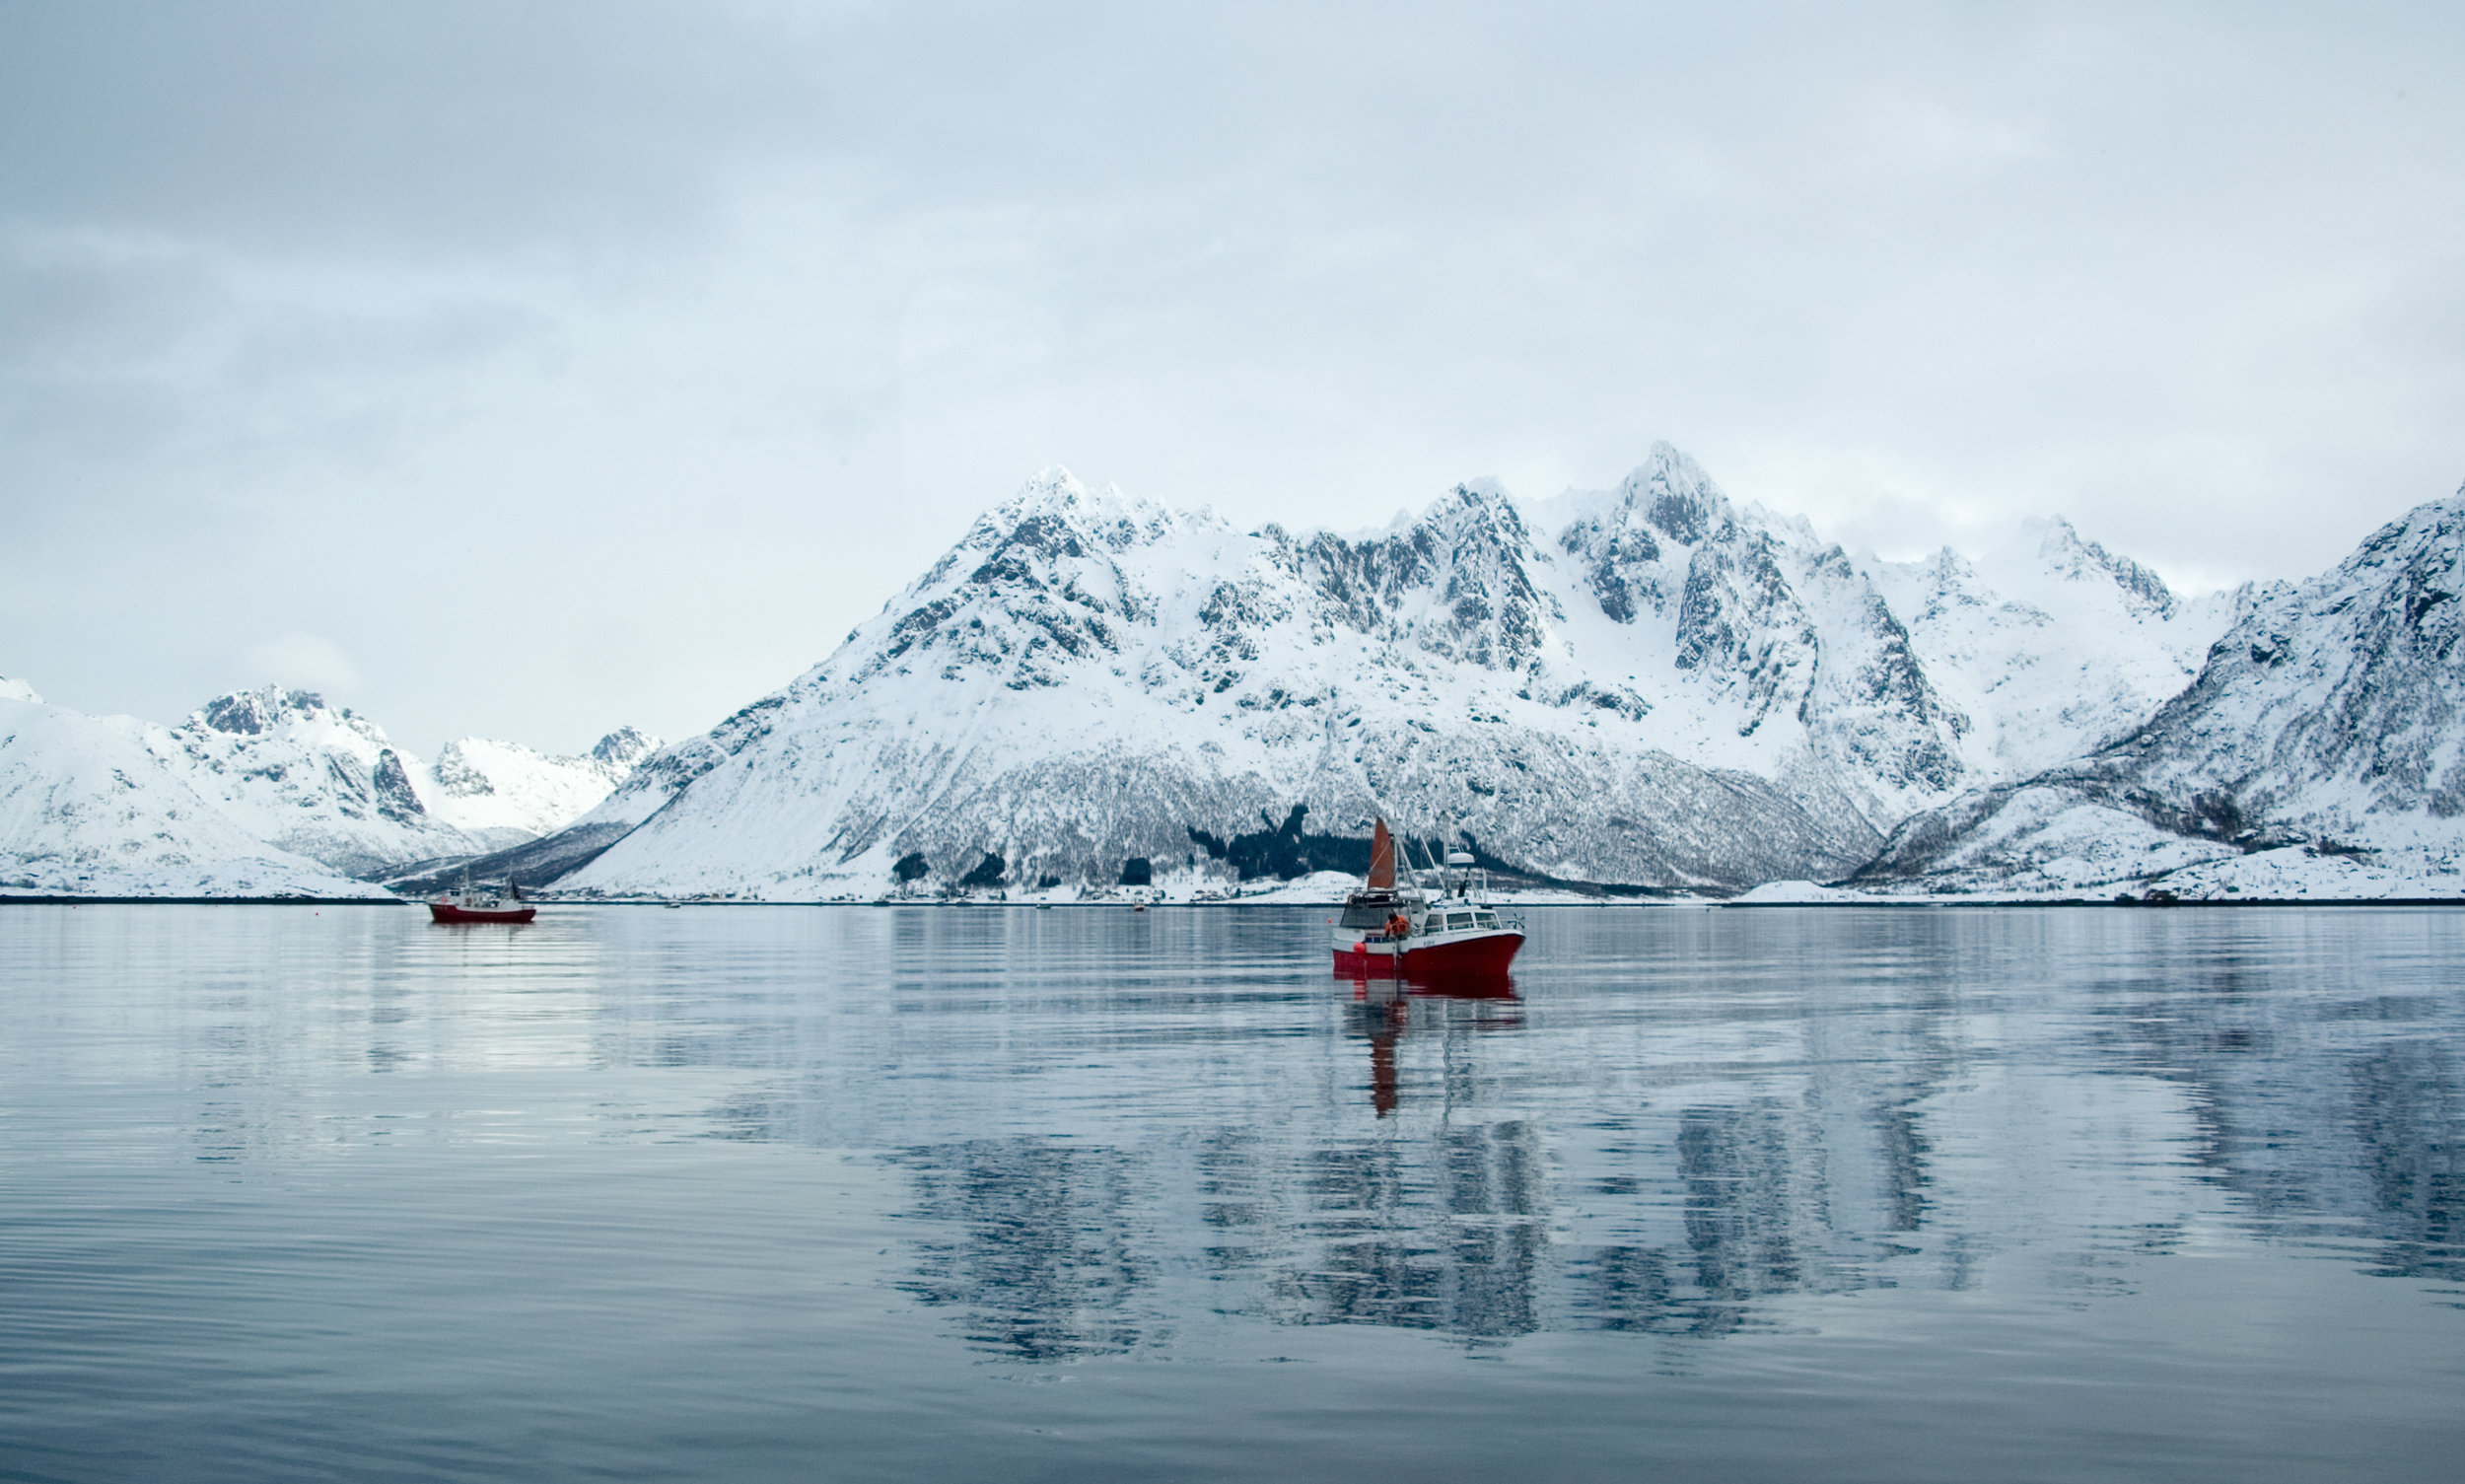 Fishing boats in the North of Norway. Photo by:Fredrik Myhre / WWF-Norway